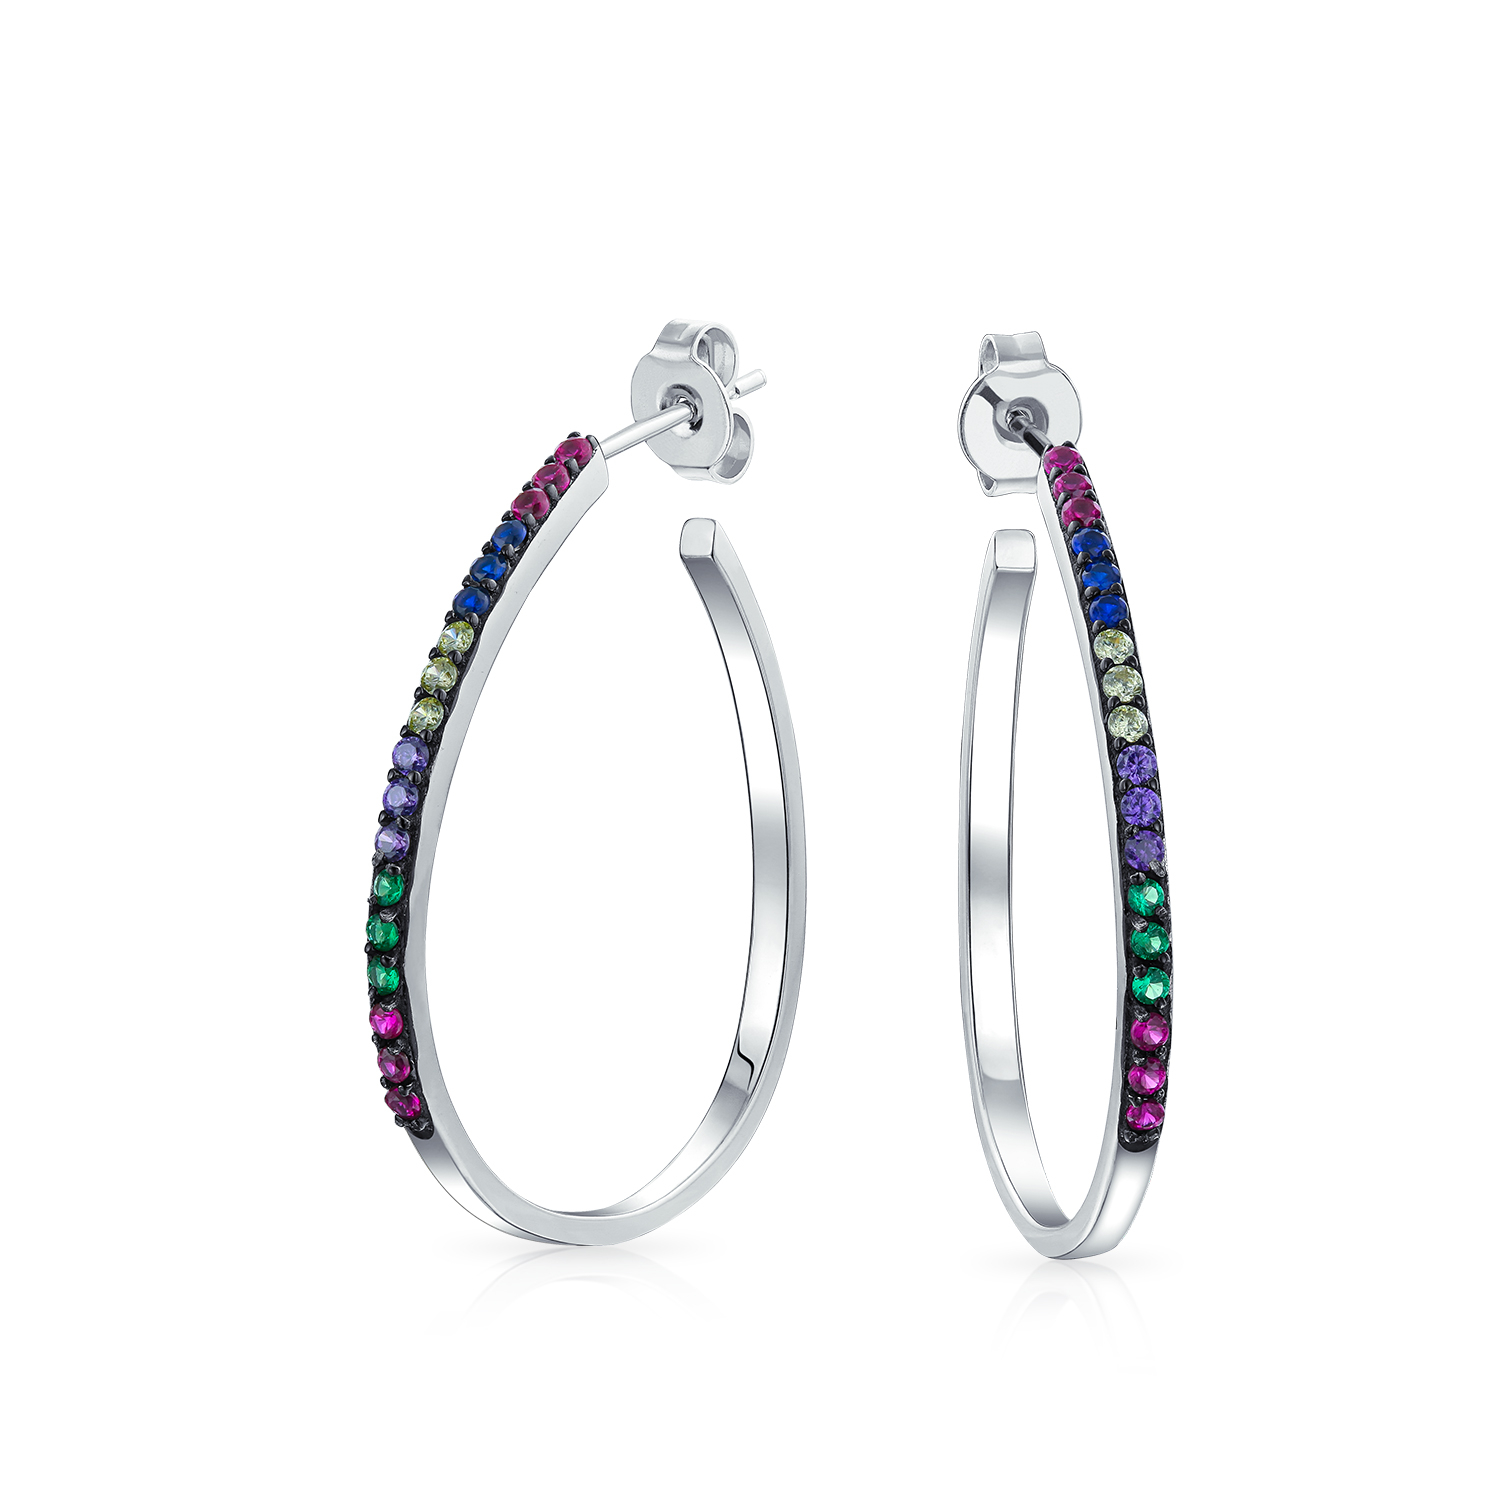 Dangling Earrings Oval Round Cubic Zirconia 925 Sterling Silver Choose Color